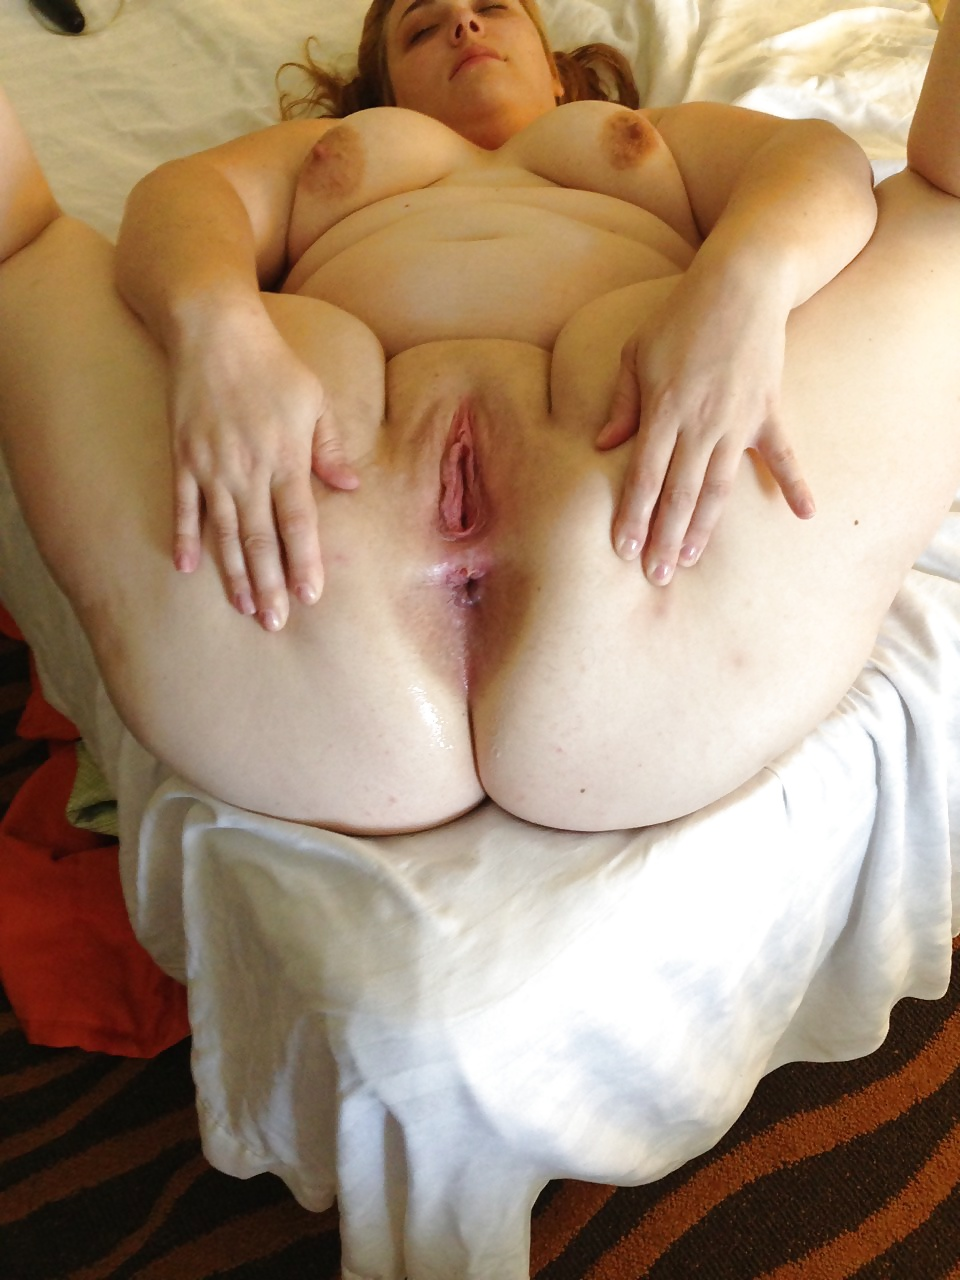 Fat girl anal pics, chubby pussy galery